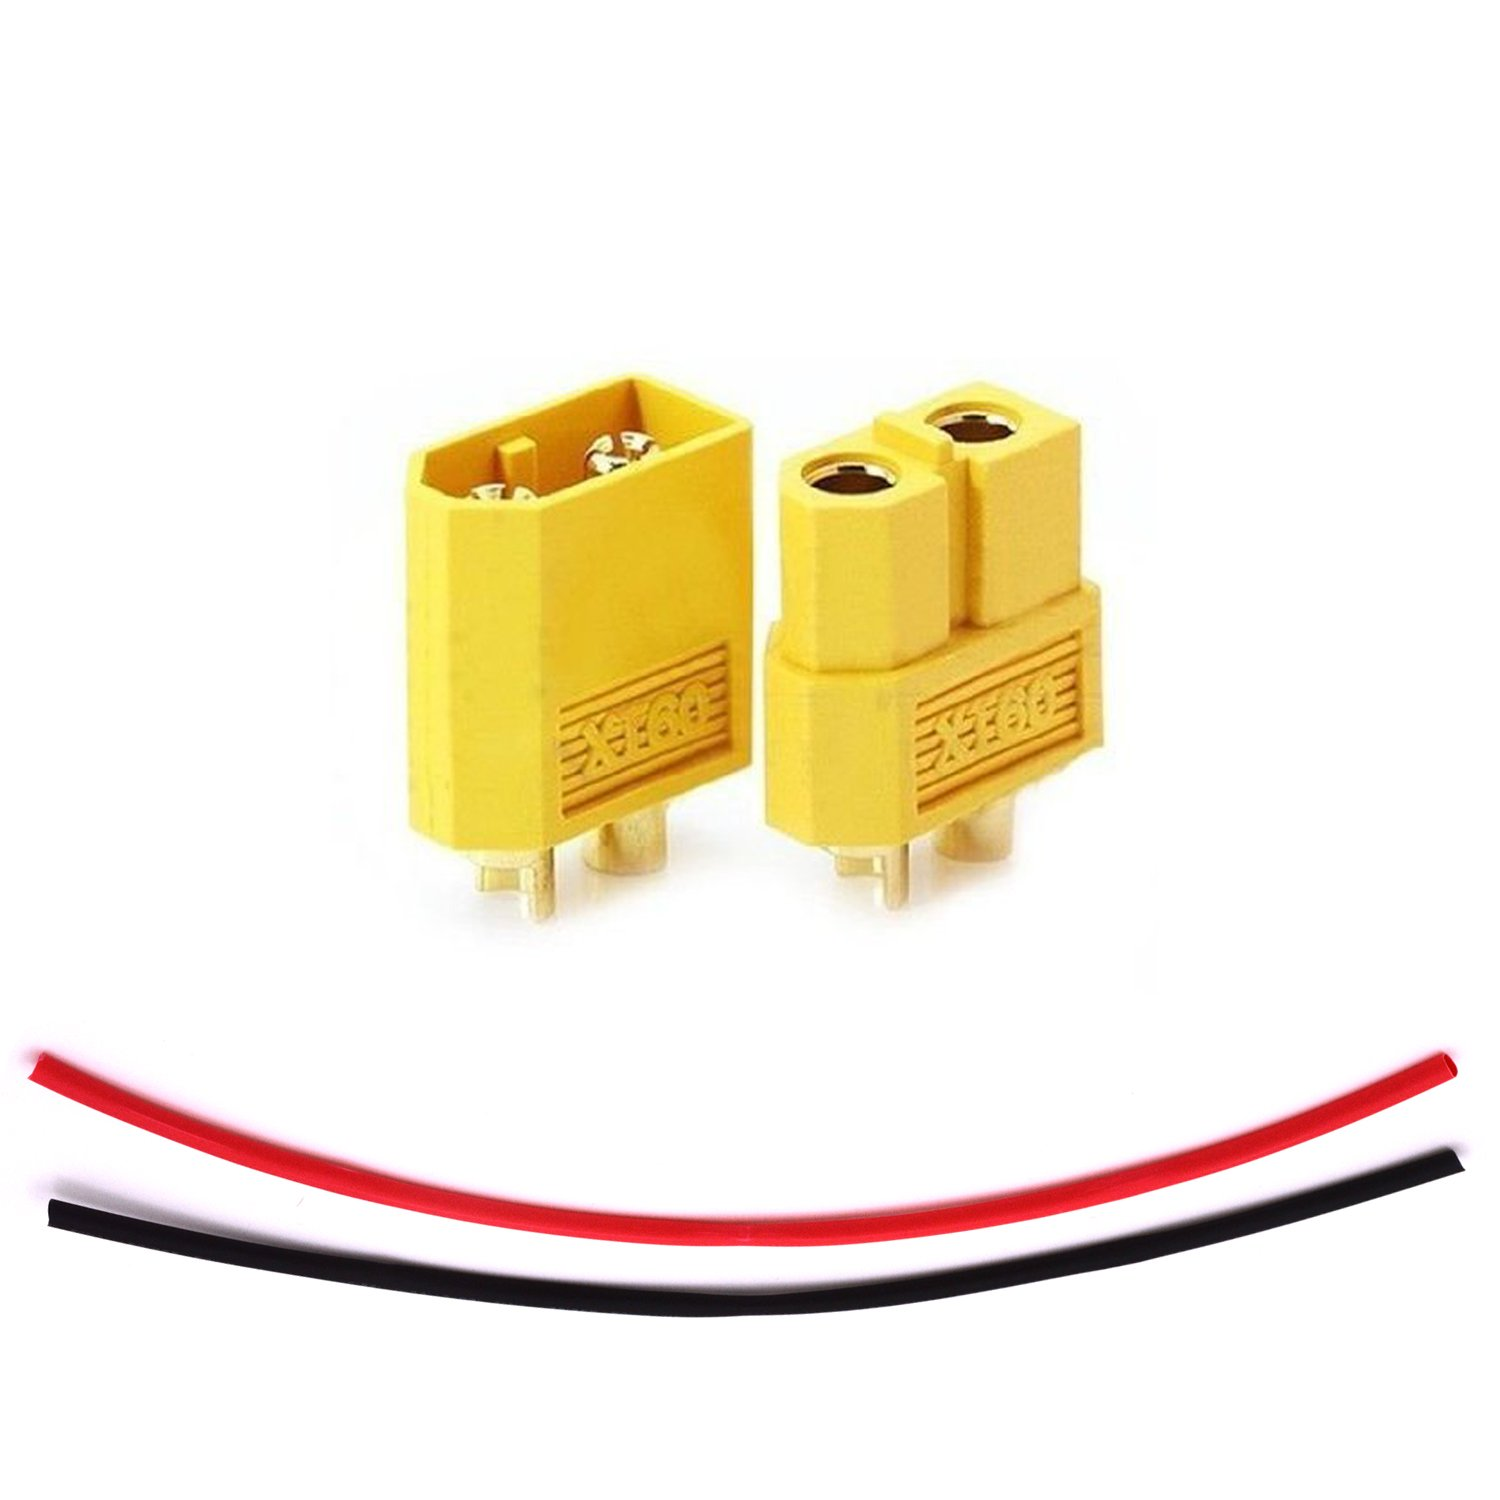 LHI 5 Pairs XT60 Male Female Bullet Connectors Plugs For RC Lipo Battery